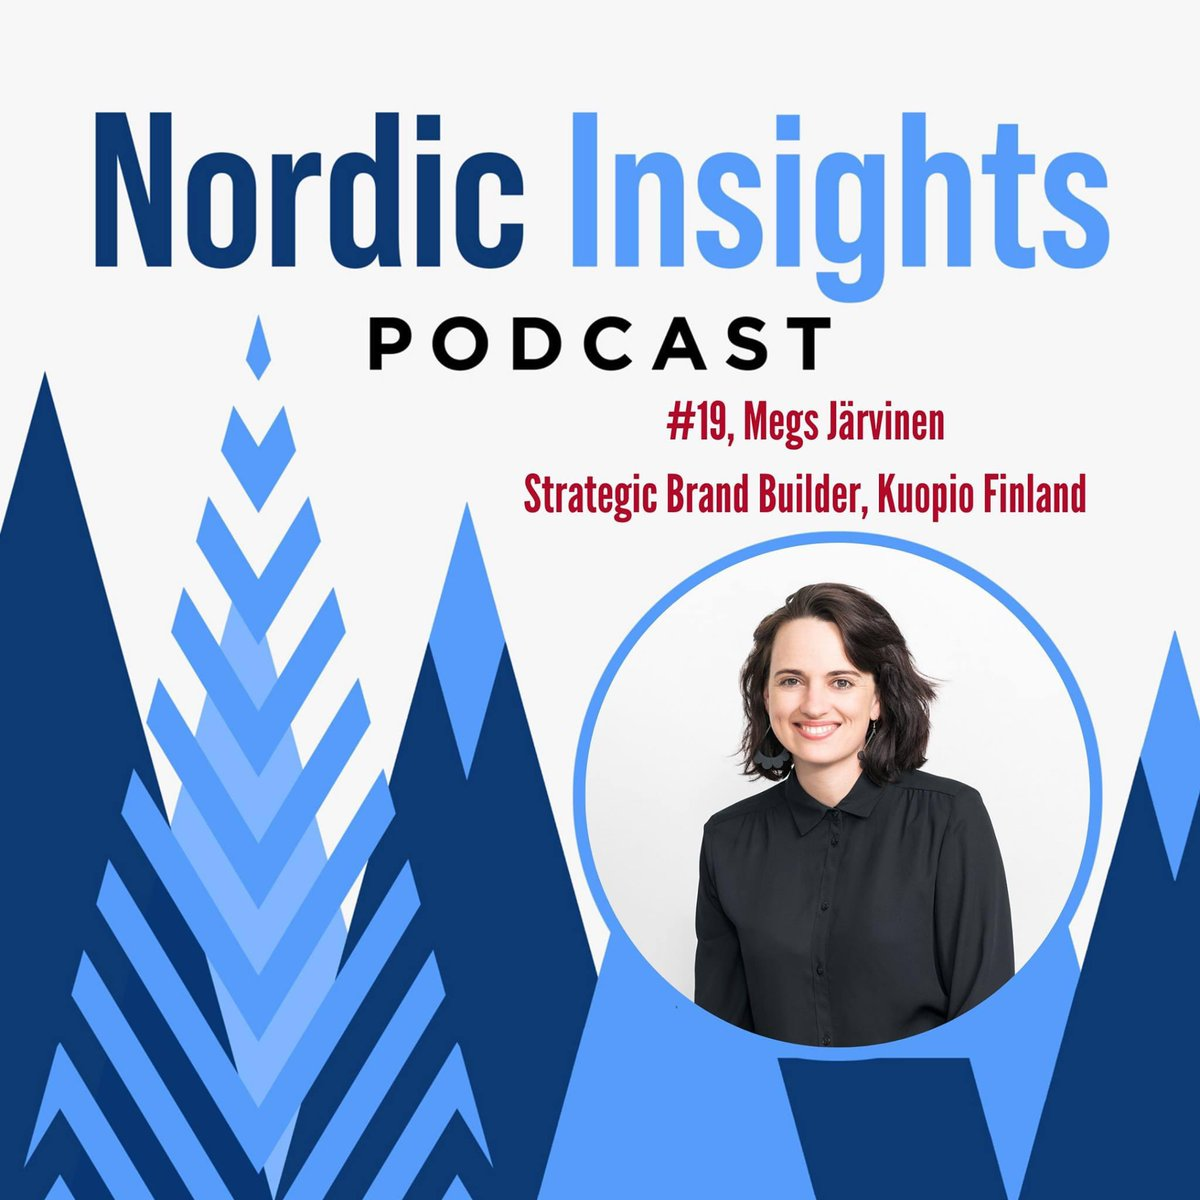 South African born former Sydneysider Megs Jarvinen moved to Finland. What has her experience been like adjusting 4 seasons & Finnish society. EPS 19 https://t.co/Ito7w74gvr  #nordic #finland #finnish #kuopio #immigration #movingtofinland #crossculture #finns #society #culture https://t.co/35b8qEATFZ